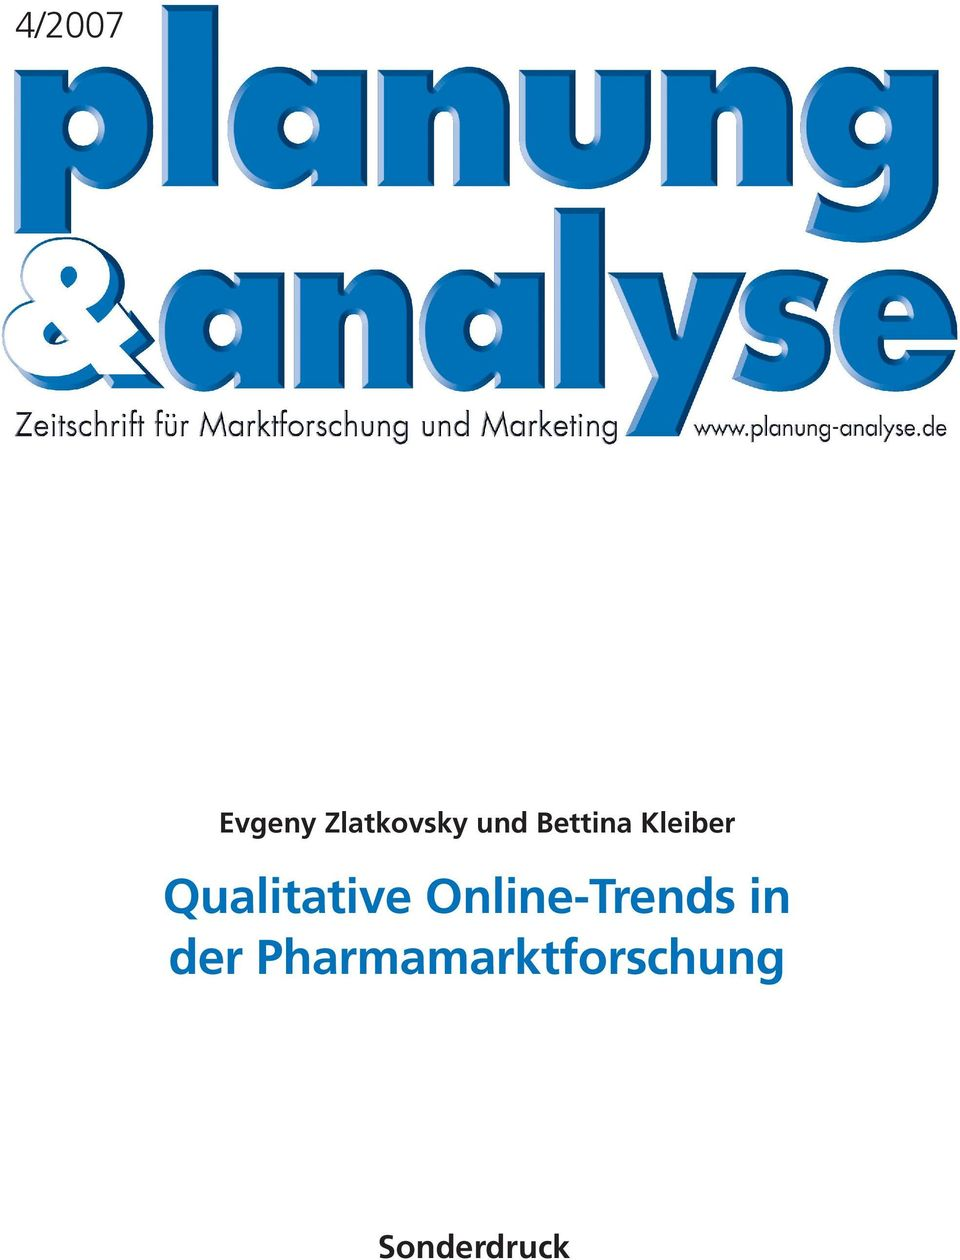 Qualitative Online-Trends